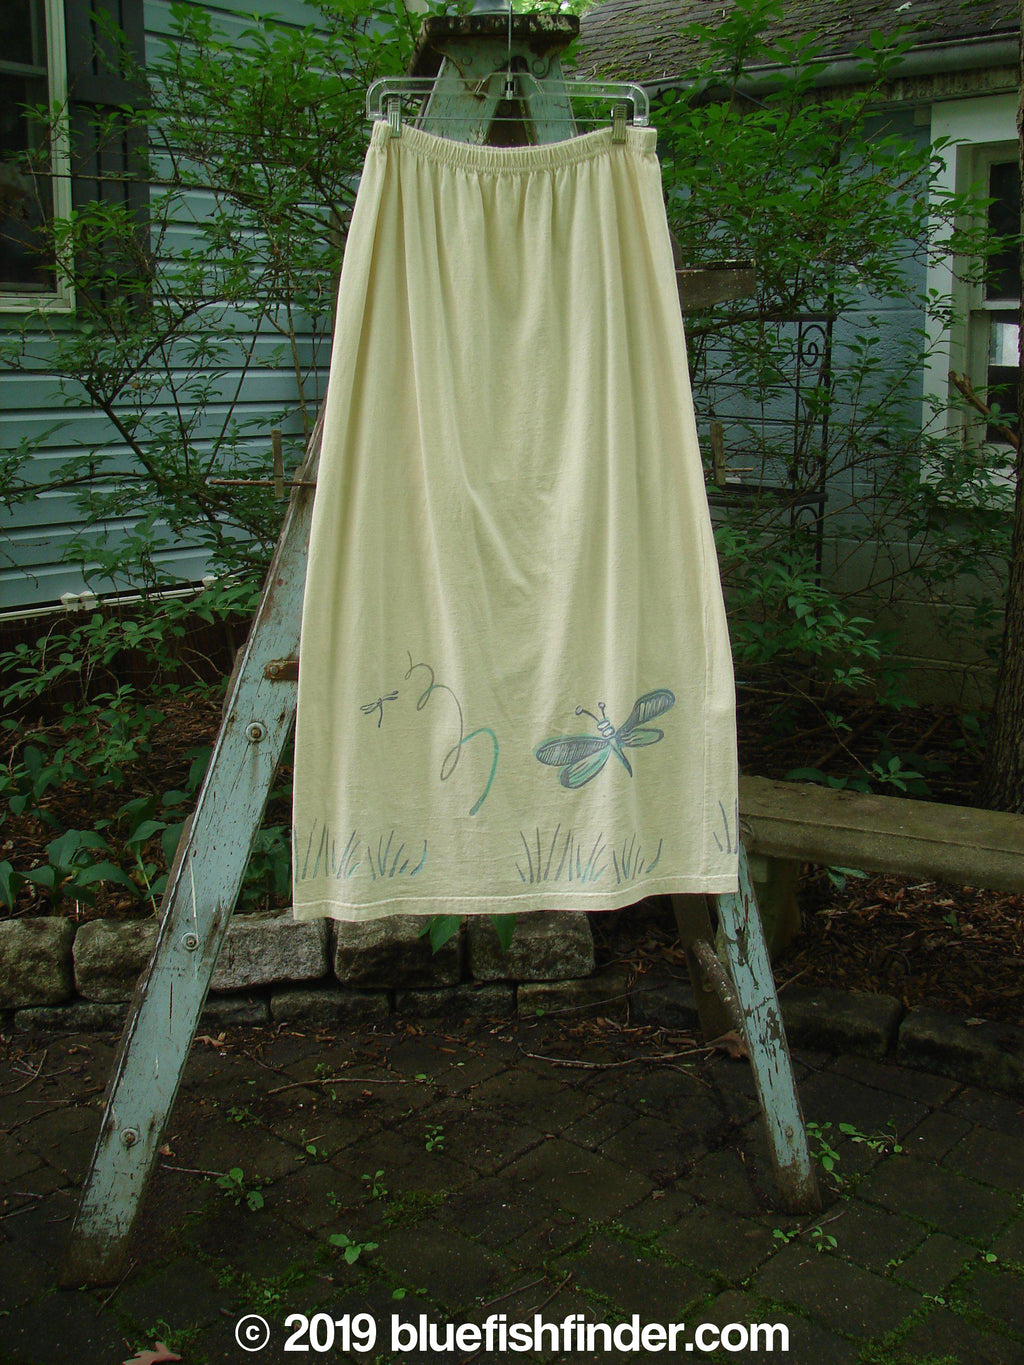 Vintage Blue Fish Clothing 1999 Straight Skirt Dust Dragonfly Size 2- Bluefishfinder.com